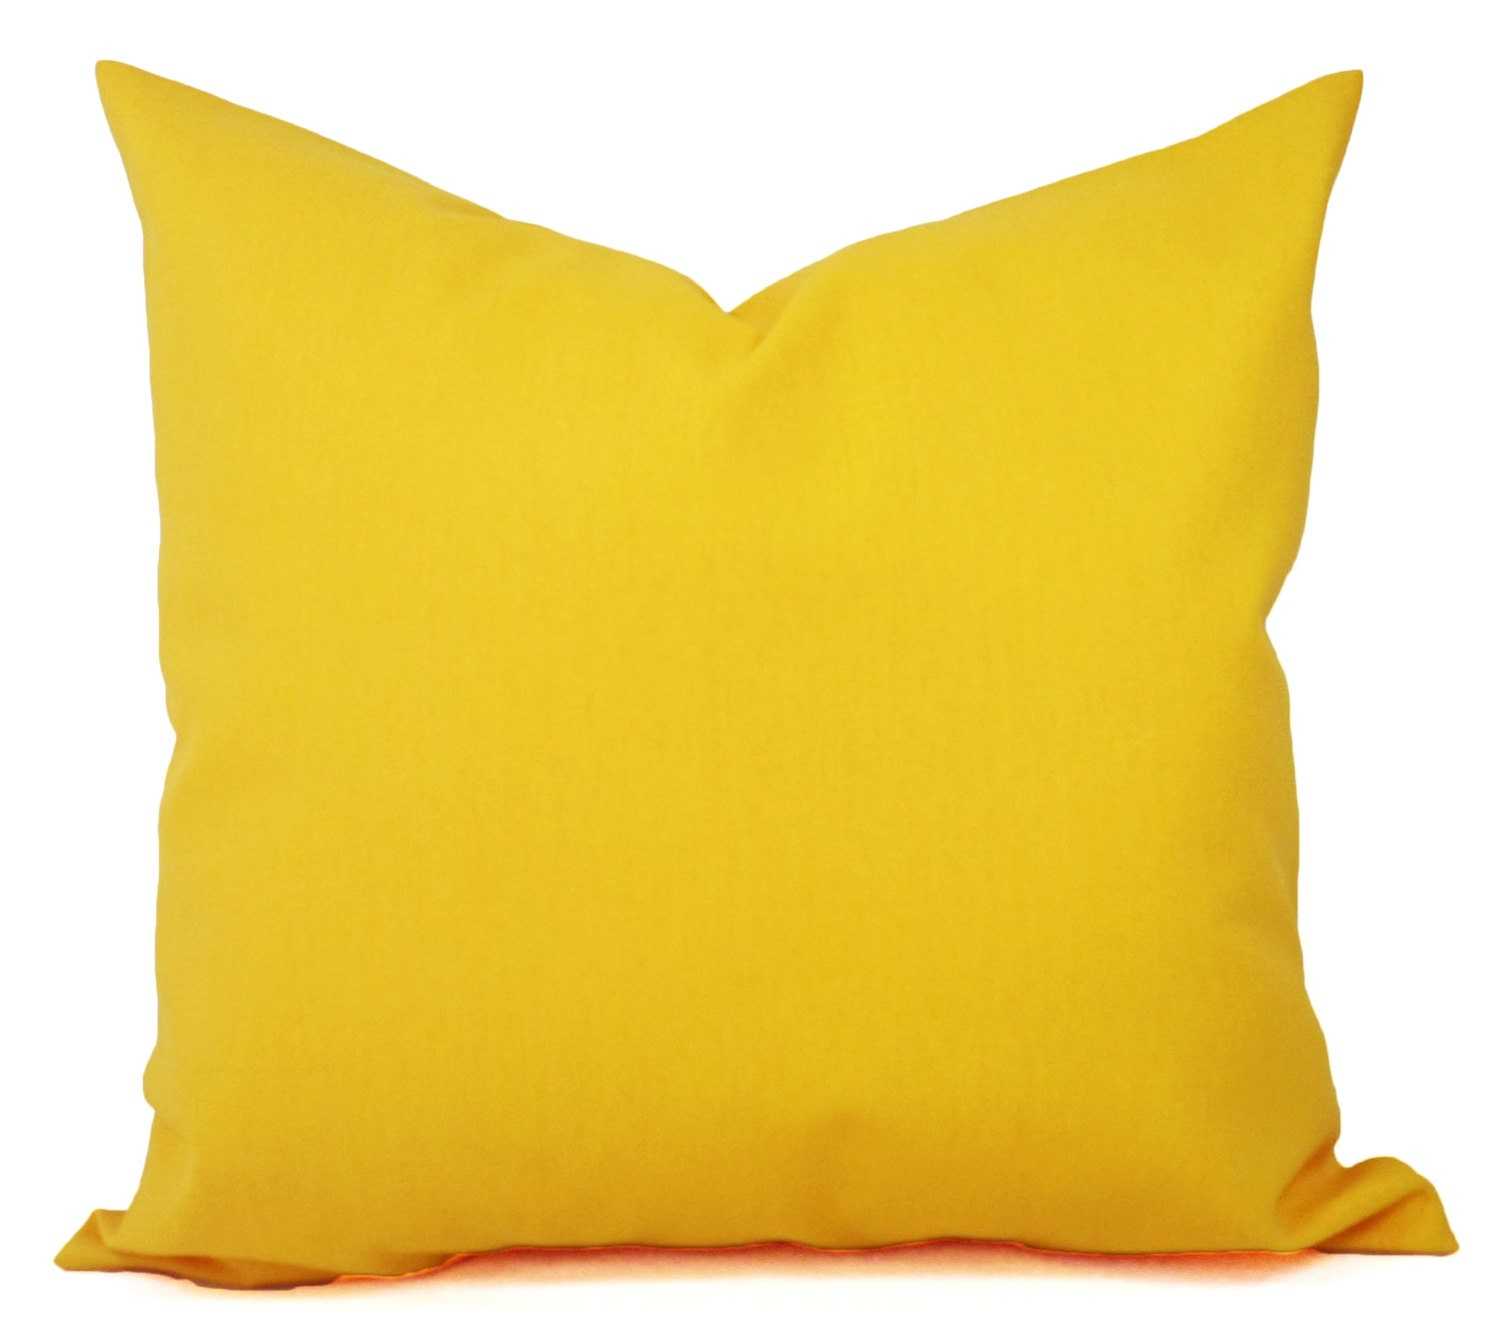 Throw Pillow Yellow : Two Solid Yellow Throw Pillow Covers Yellow Couch Pillow